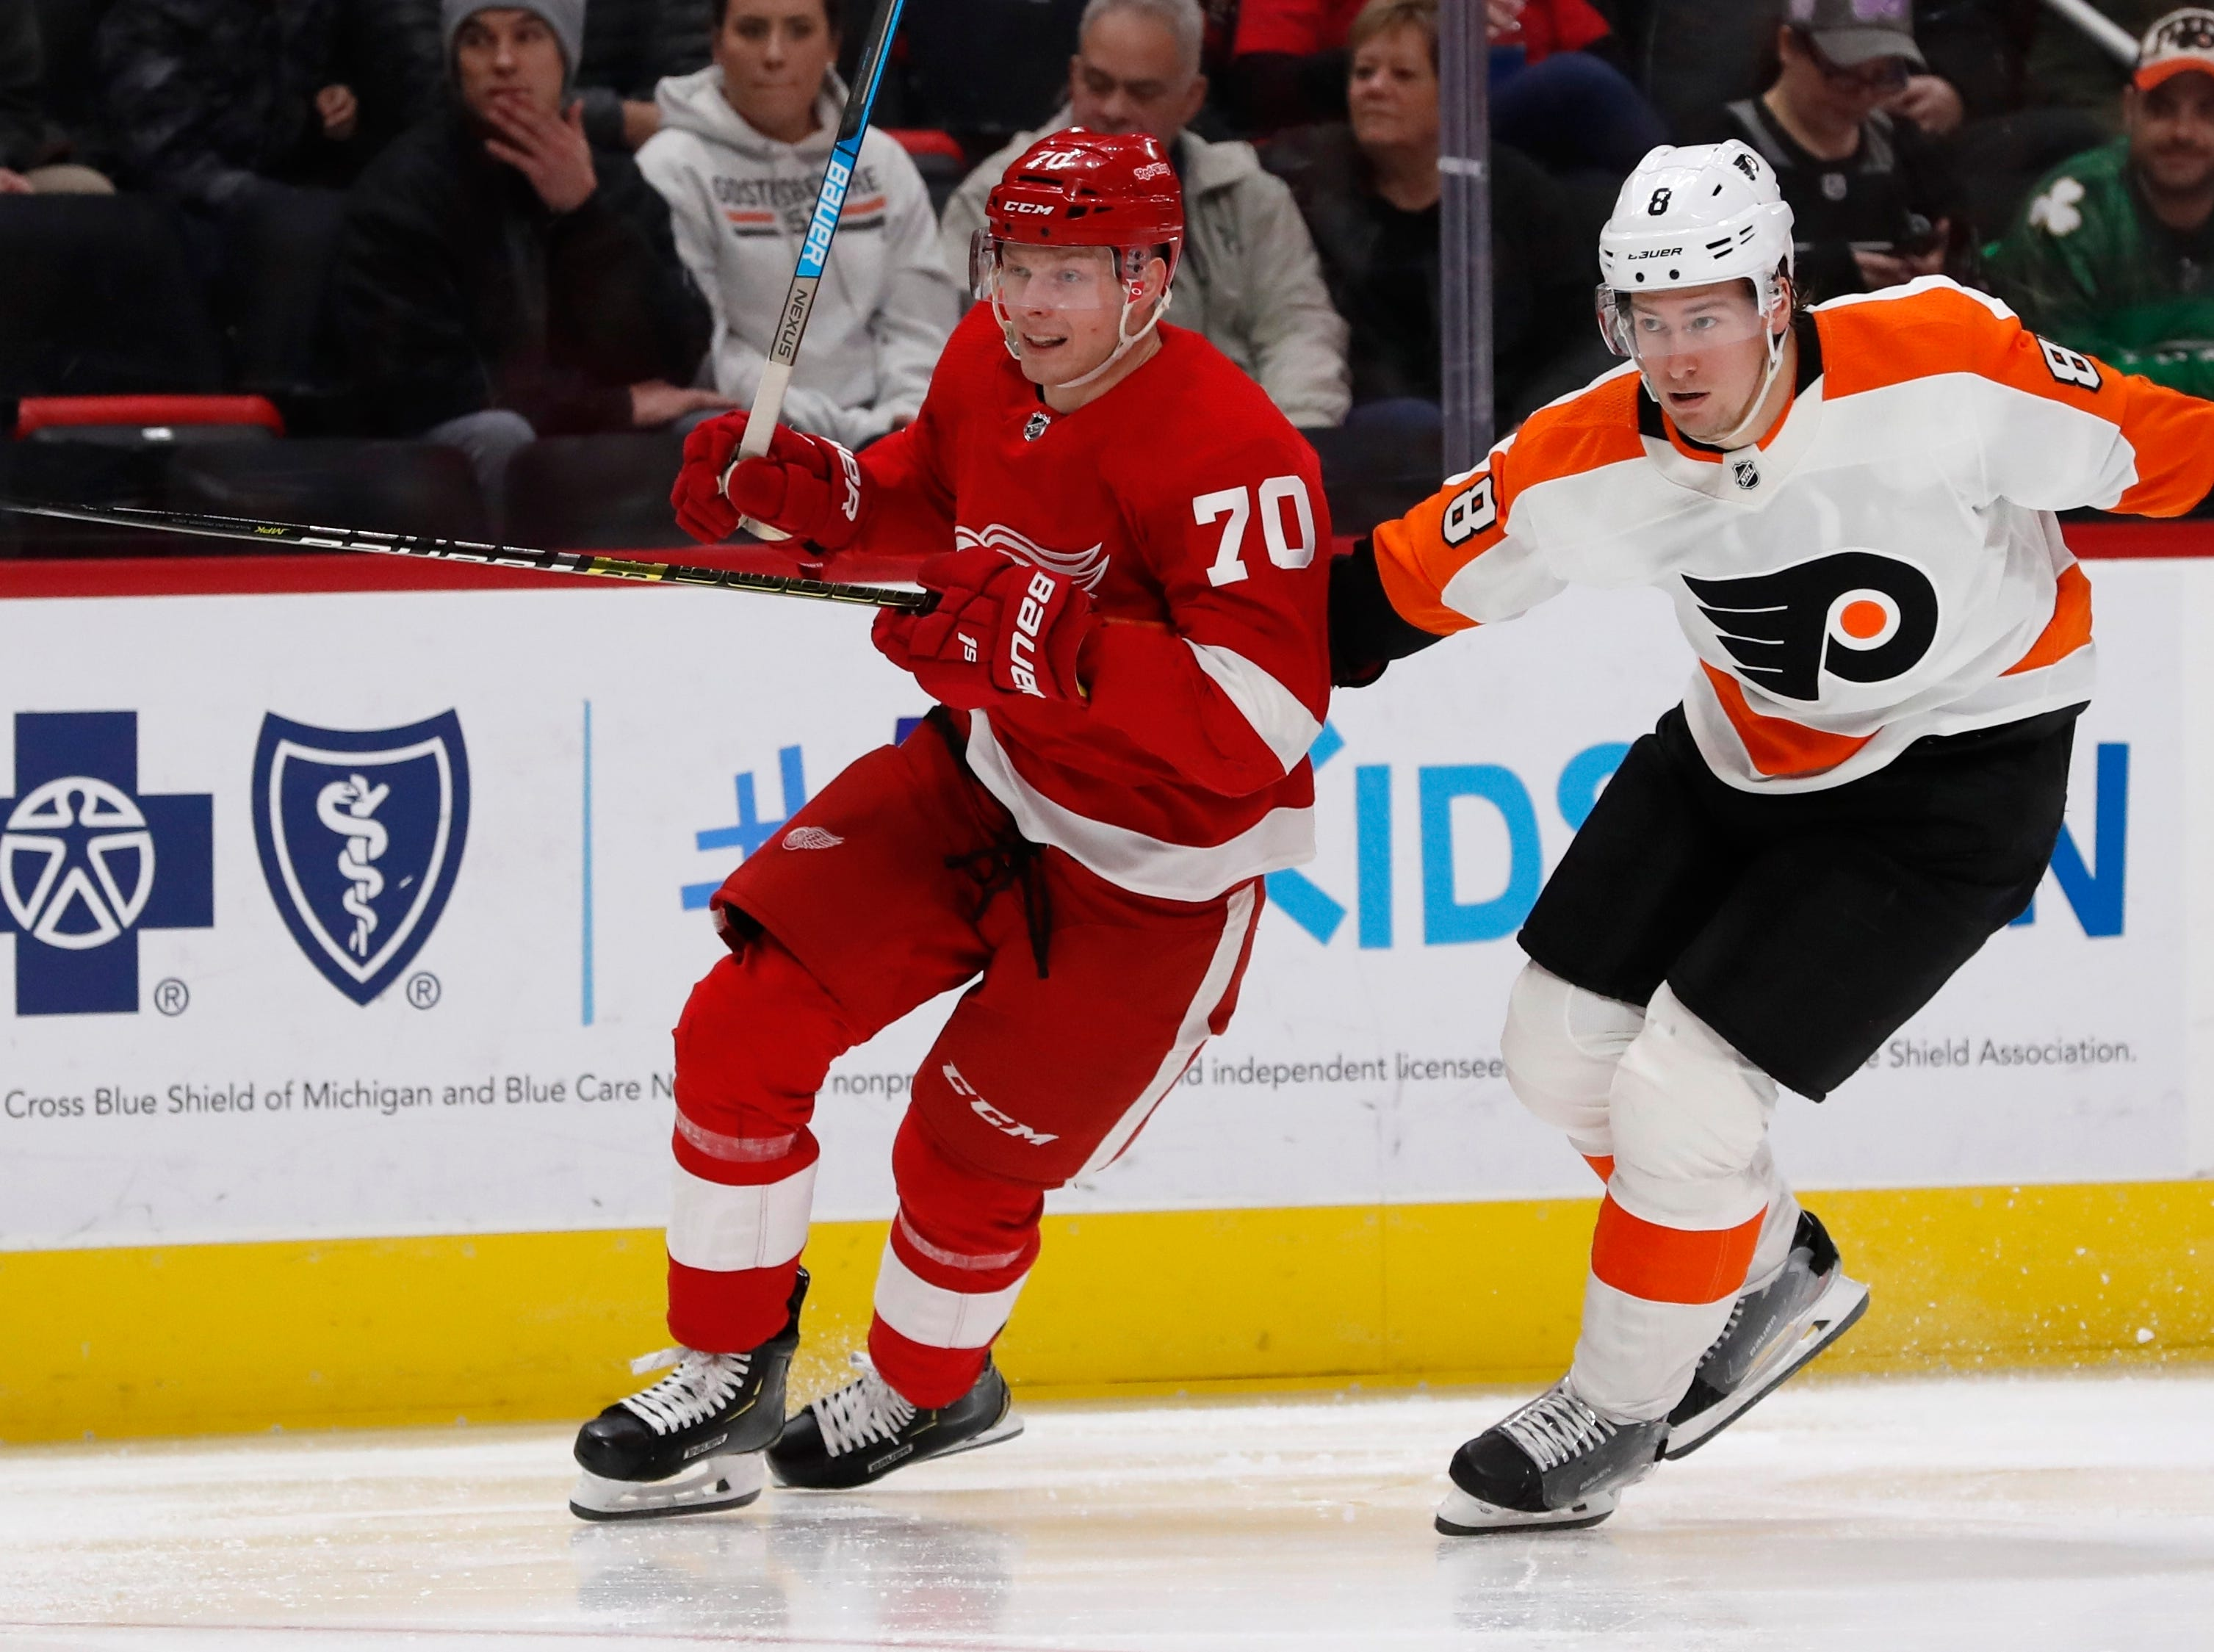 Detroit Red Wings center Christoffer Ehn (70) skates in front of Philadelphia Flyers defenseman Robert Hagg (8) during the second period.